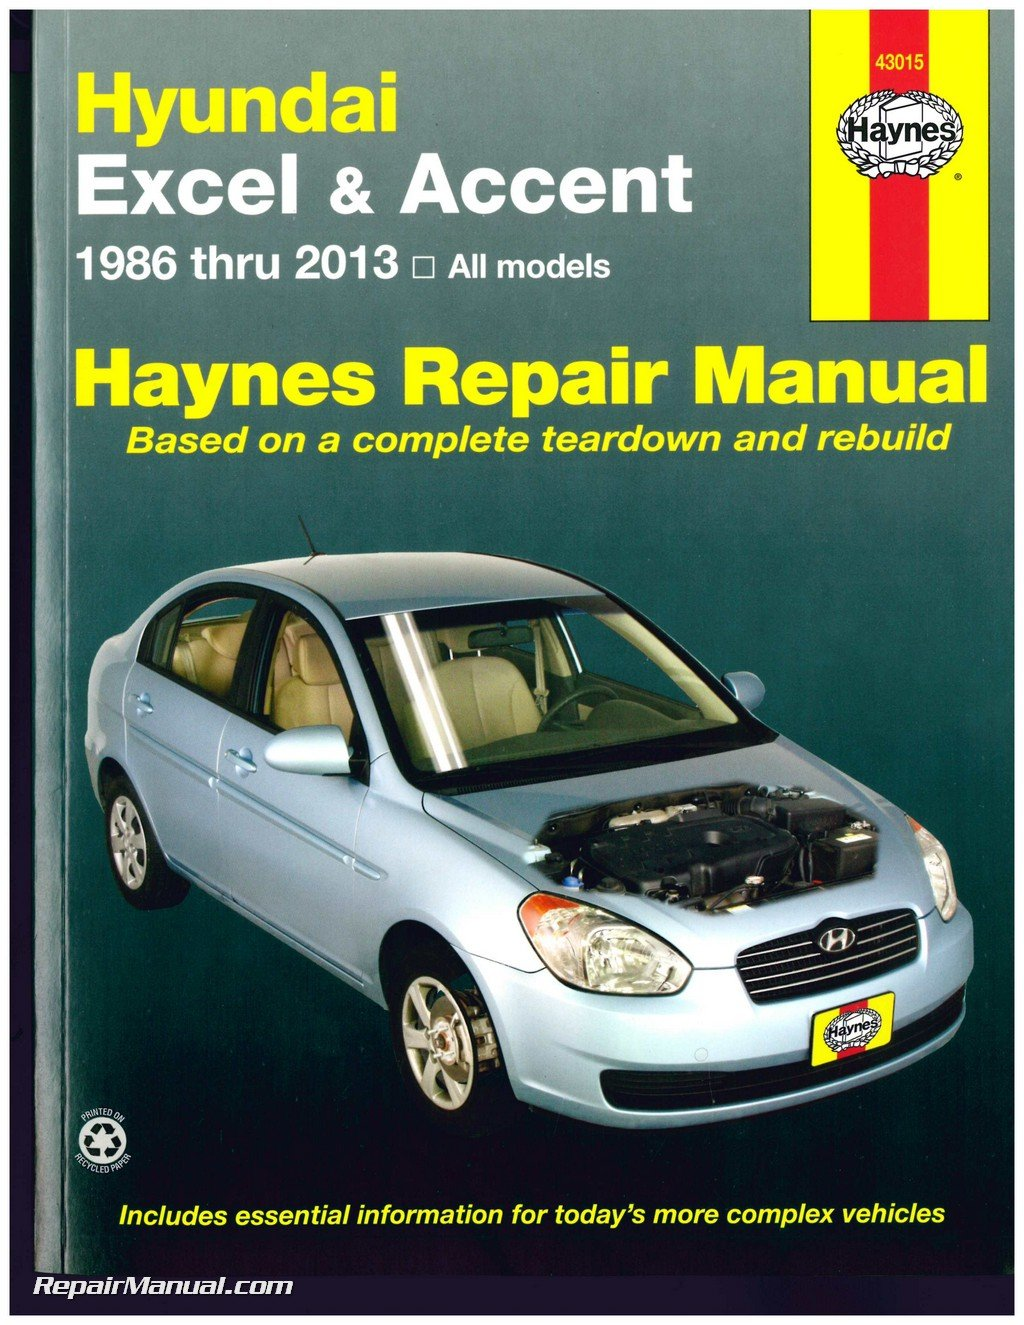 h43015 hyundai excel accent 1986 2013 haynes auto repair service rh amazon com manual de hyundai accent 1996 manual hyundai accent 1996 pdf